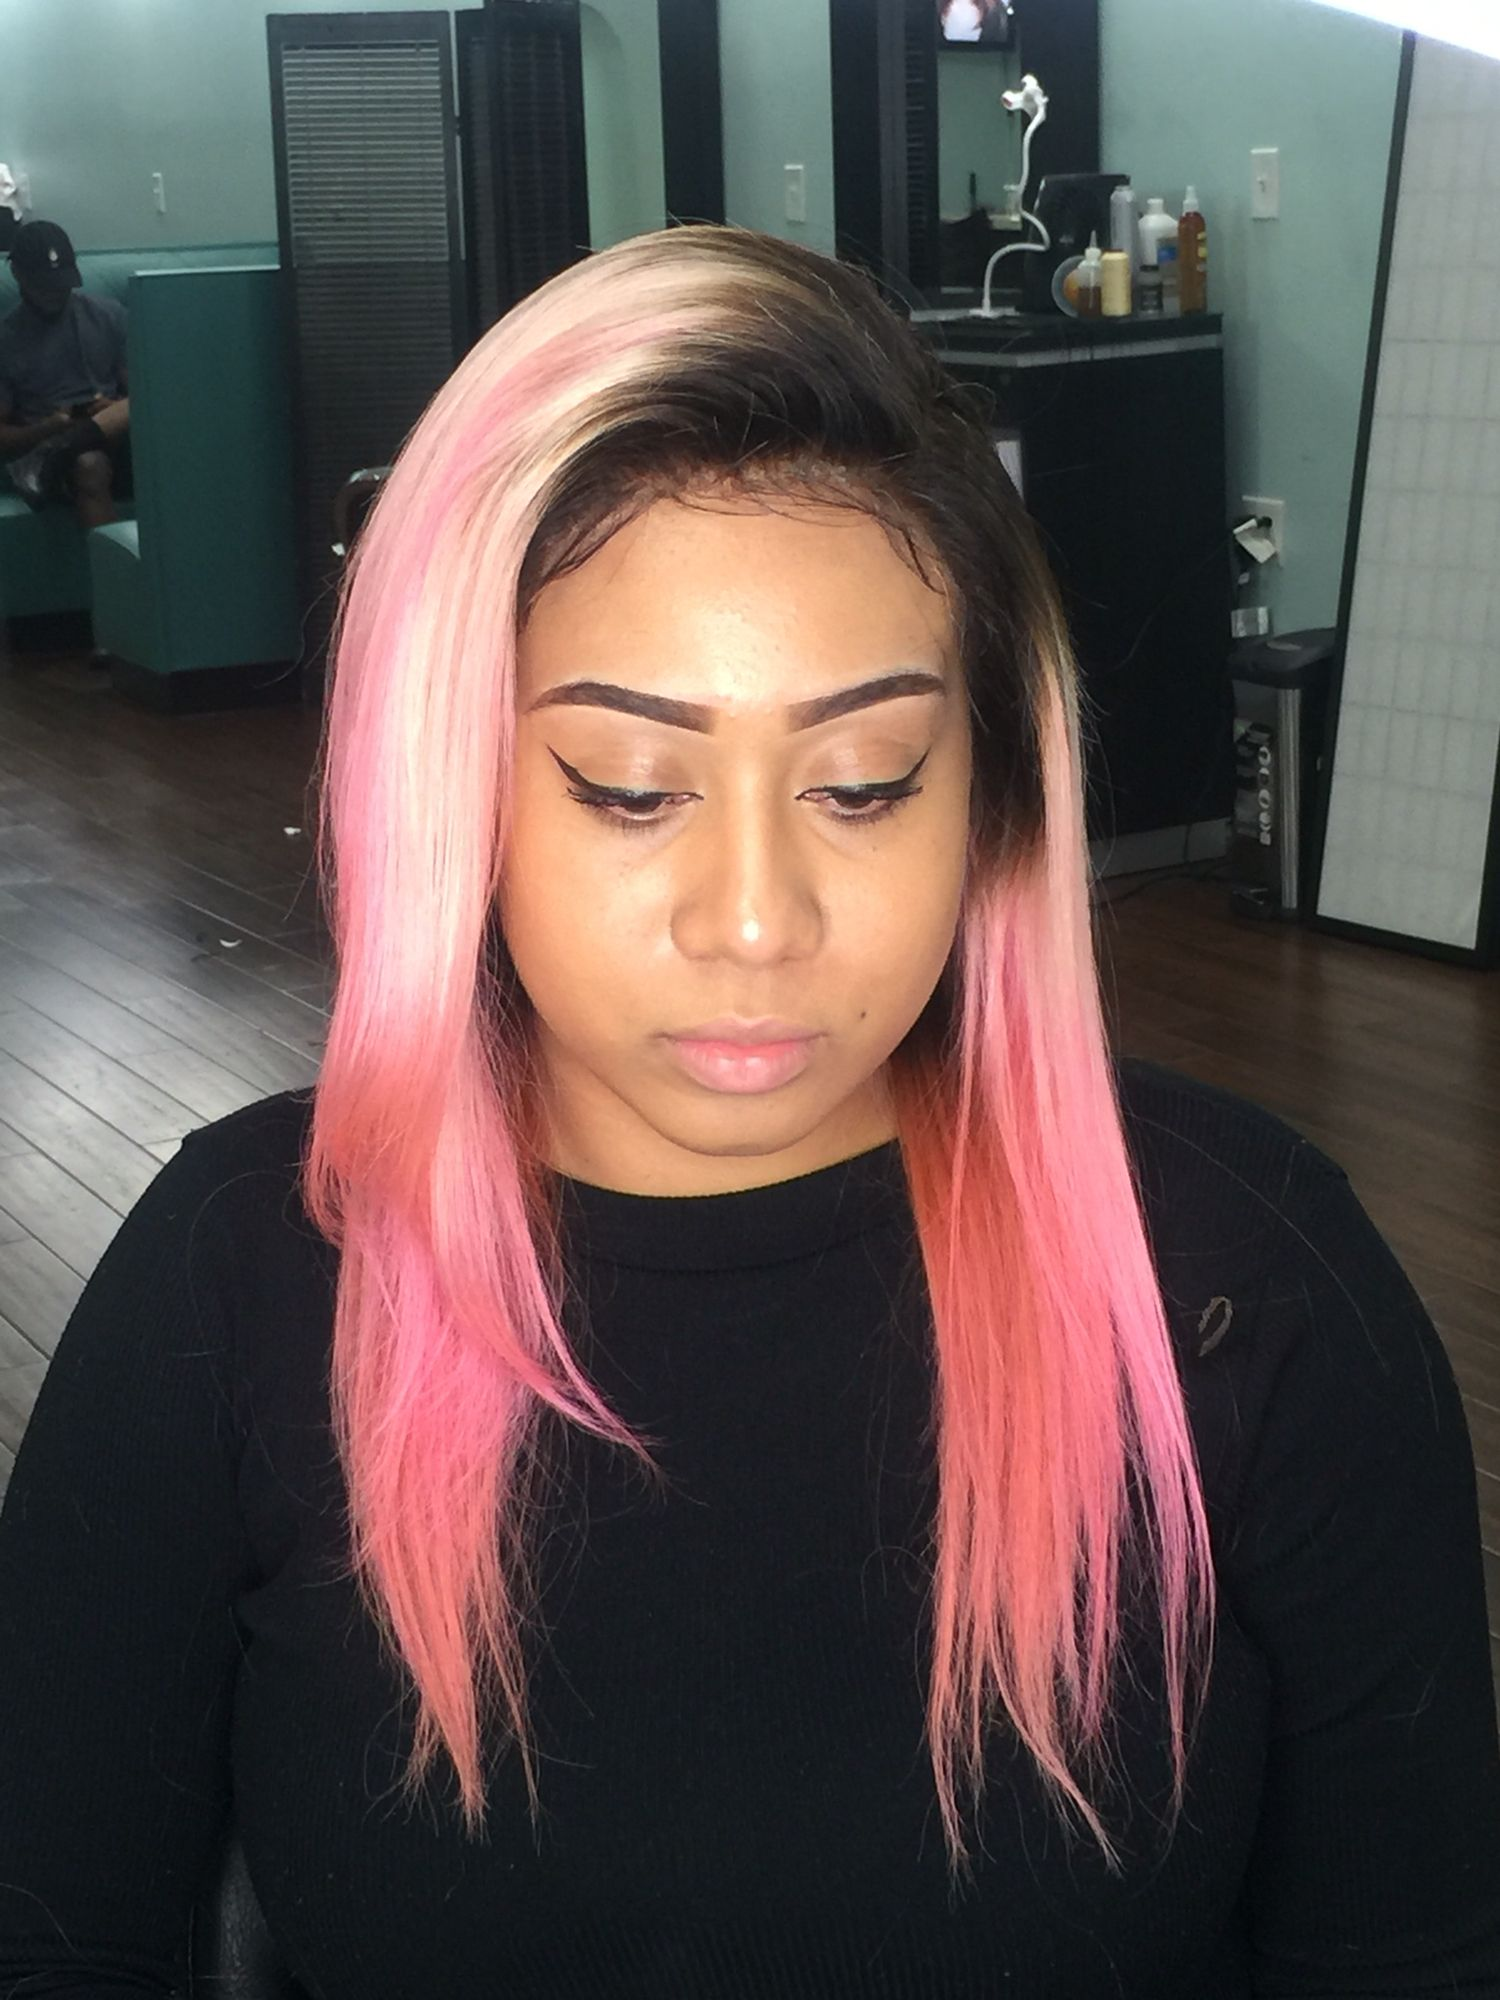 Lace Frontal Install Done By Thehairsocialite Located At Exotic